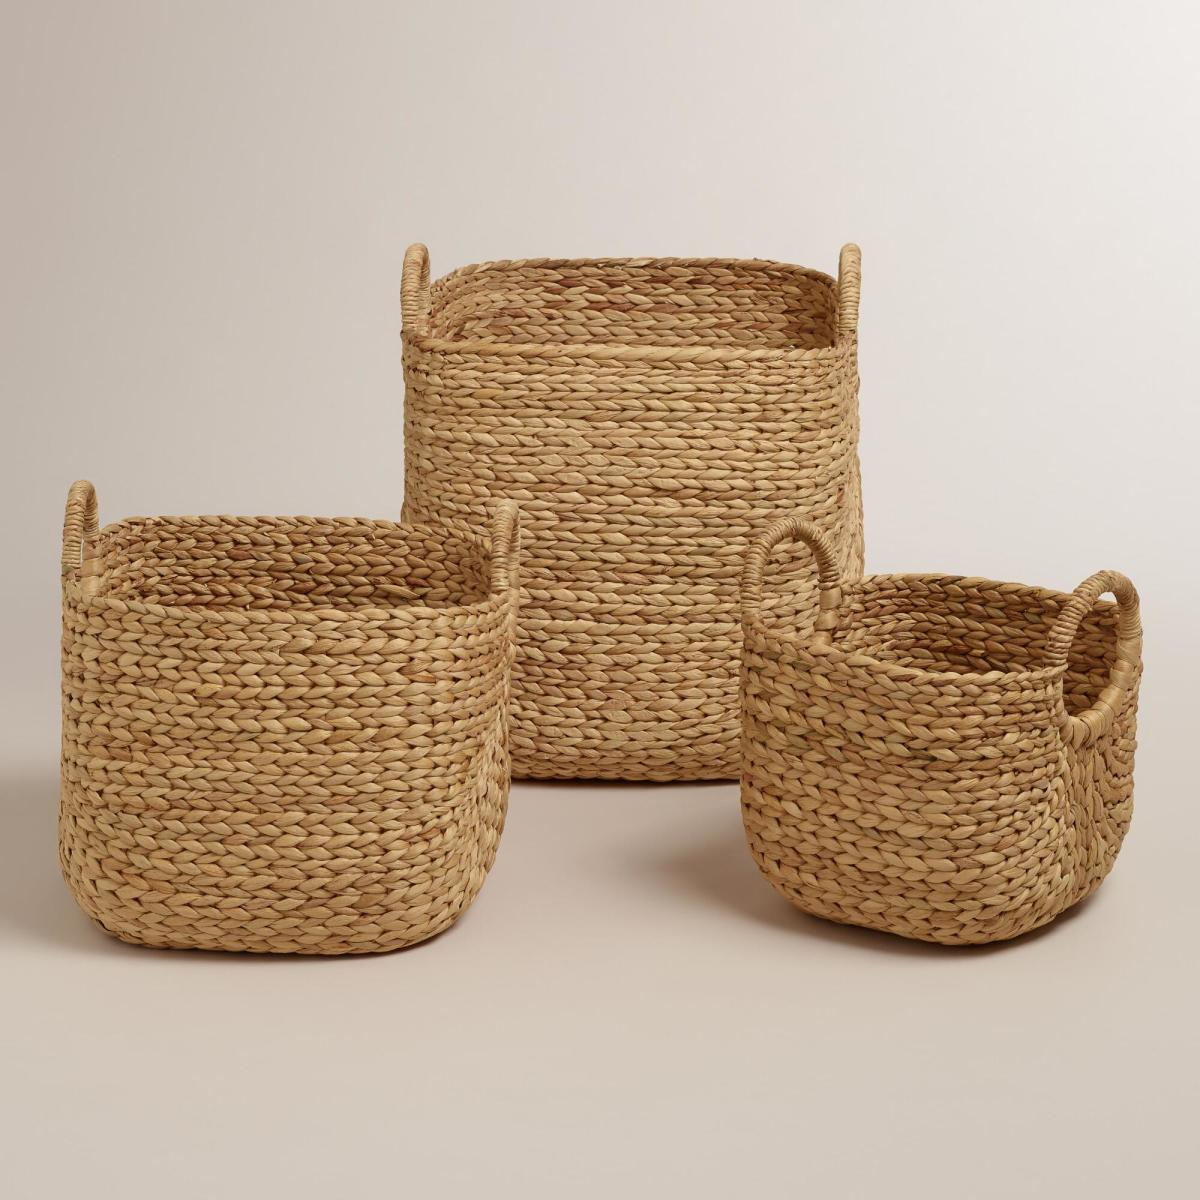 Aimee Arrow Baskets from World Market